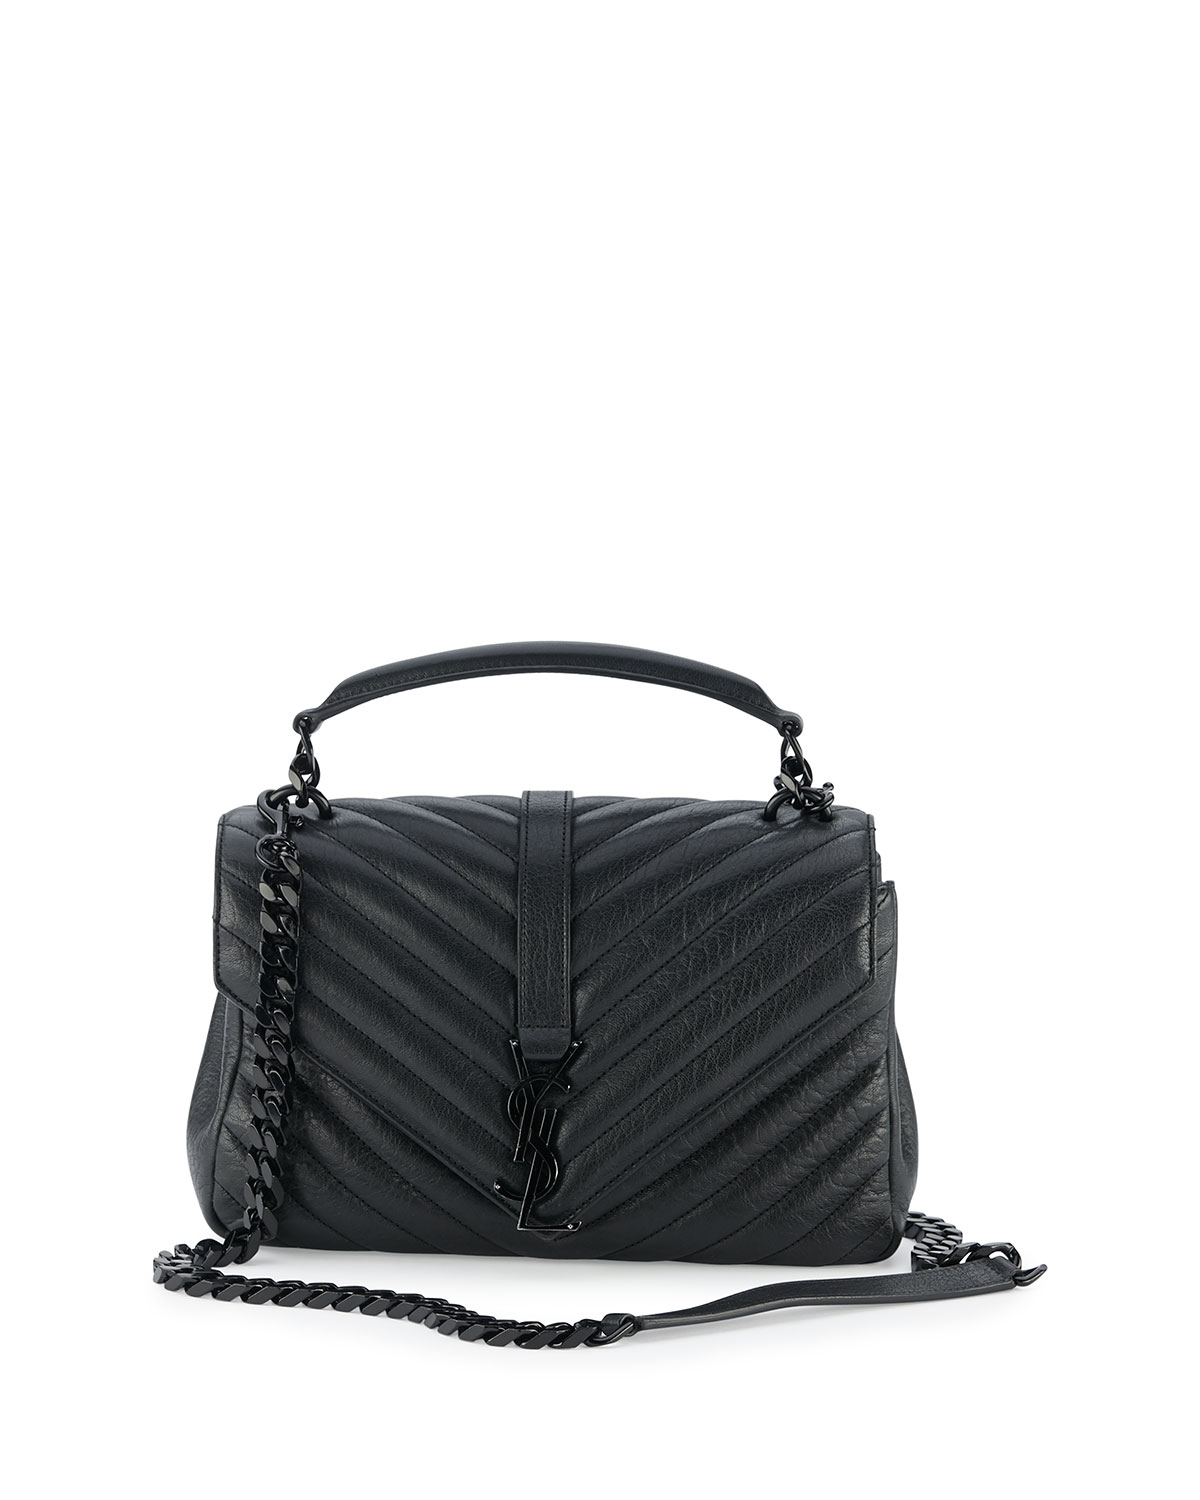 Saint Laurent Monogram Medium College Shoulder Bag, Black   Neiman ... f9ae934fde